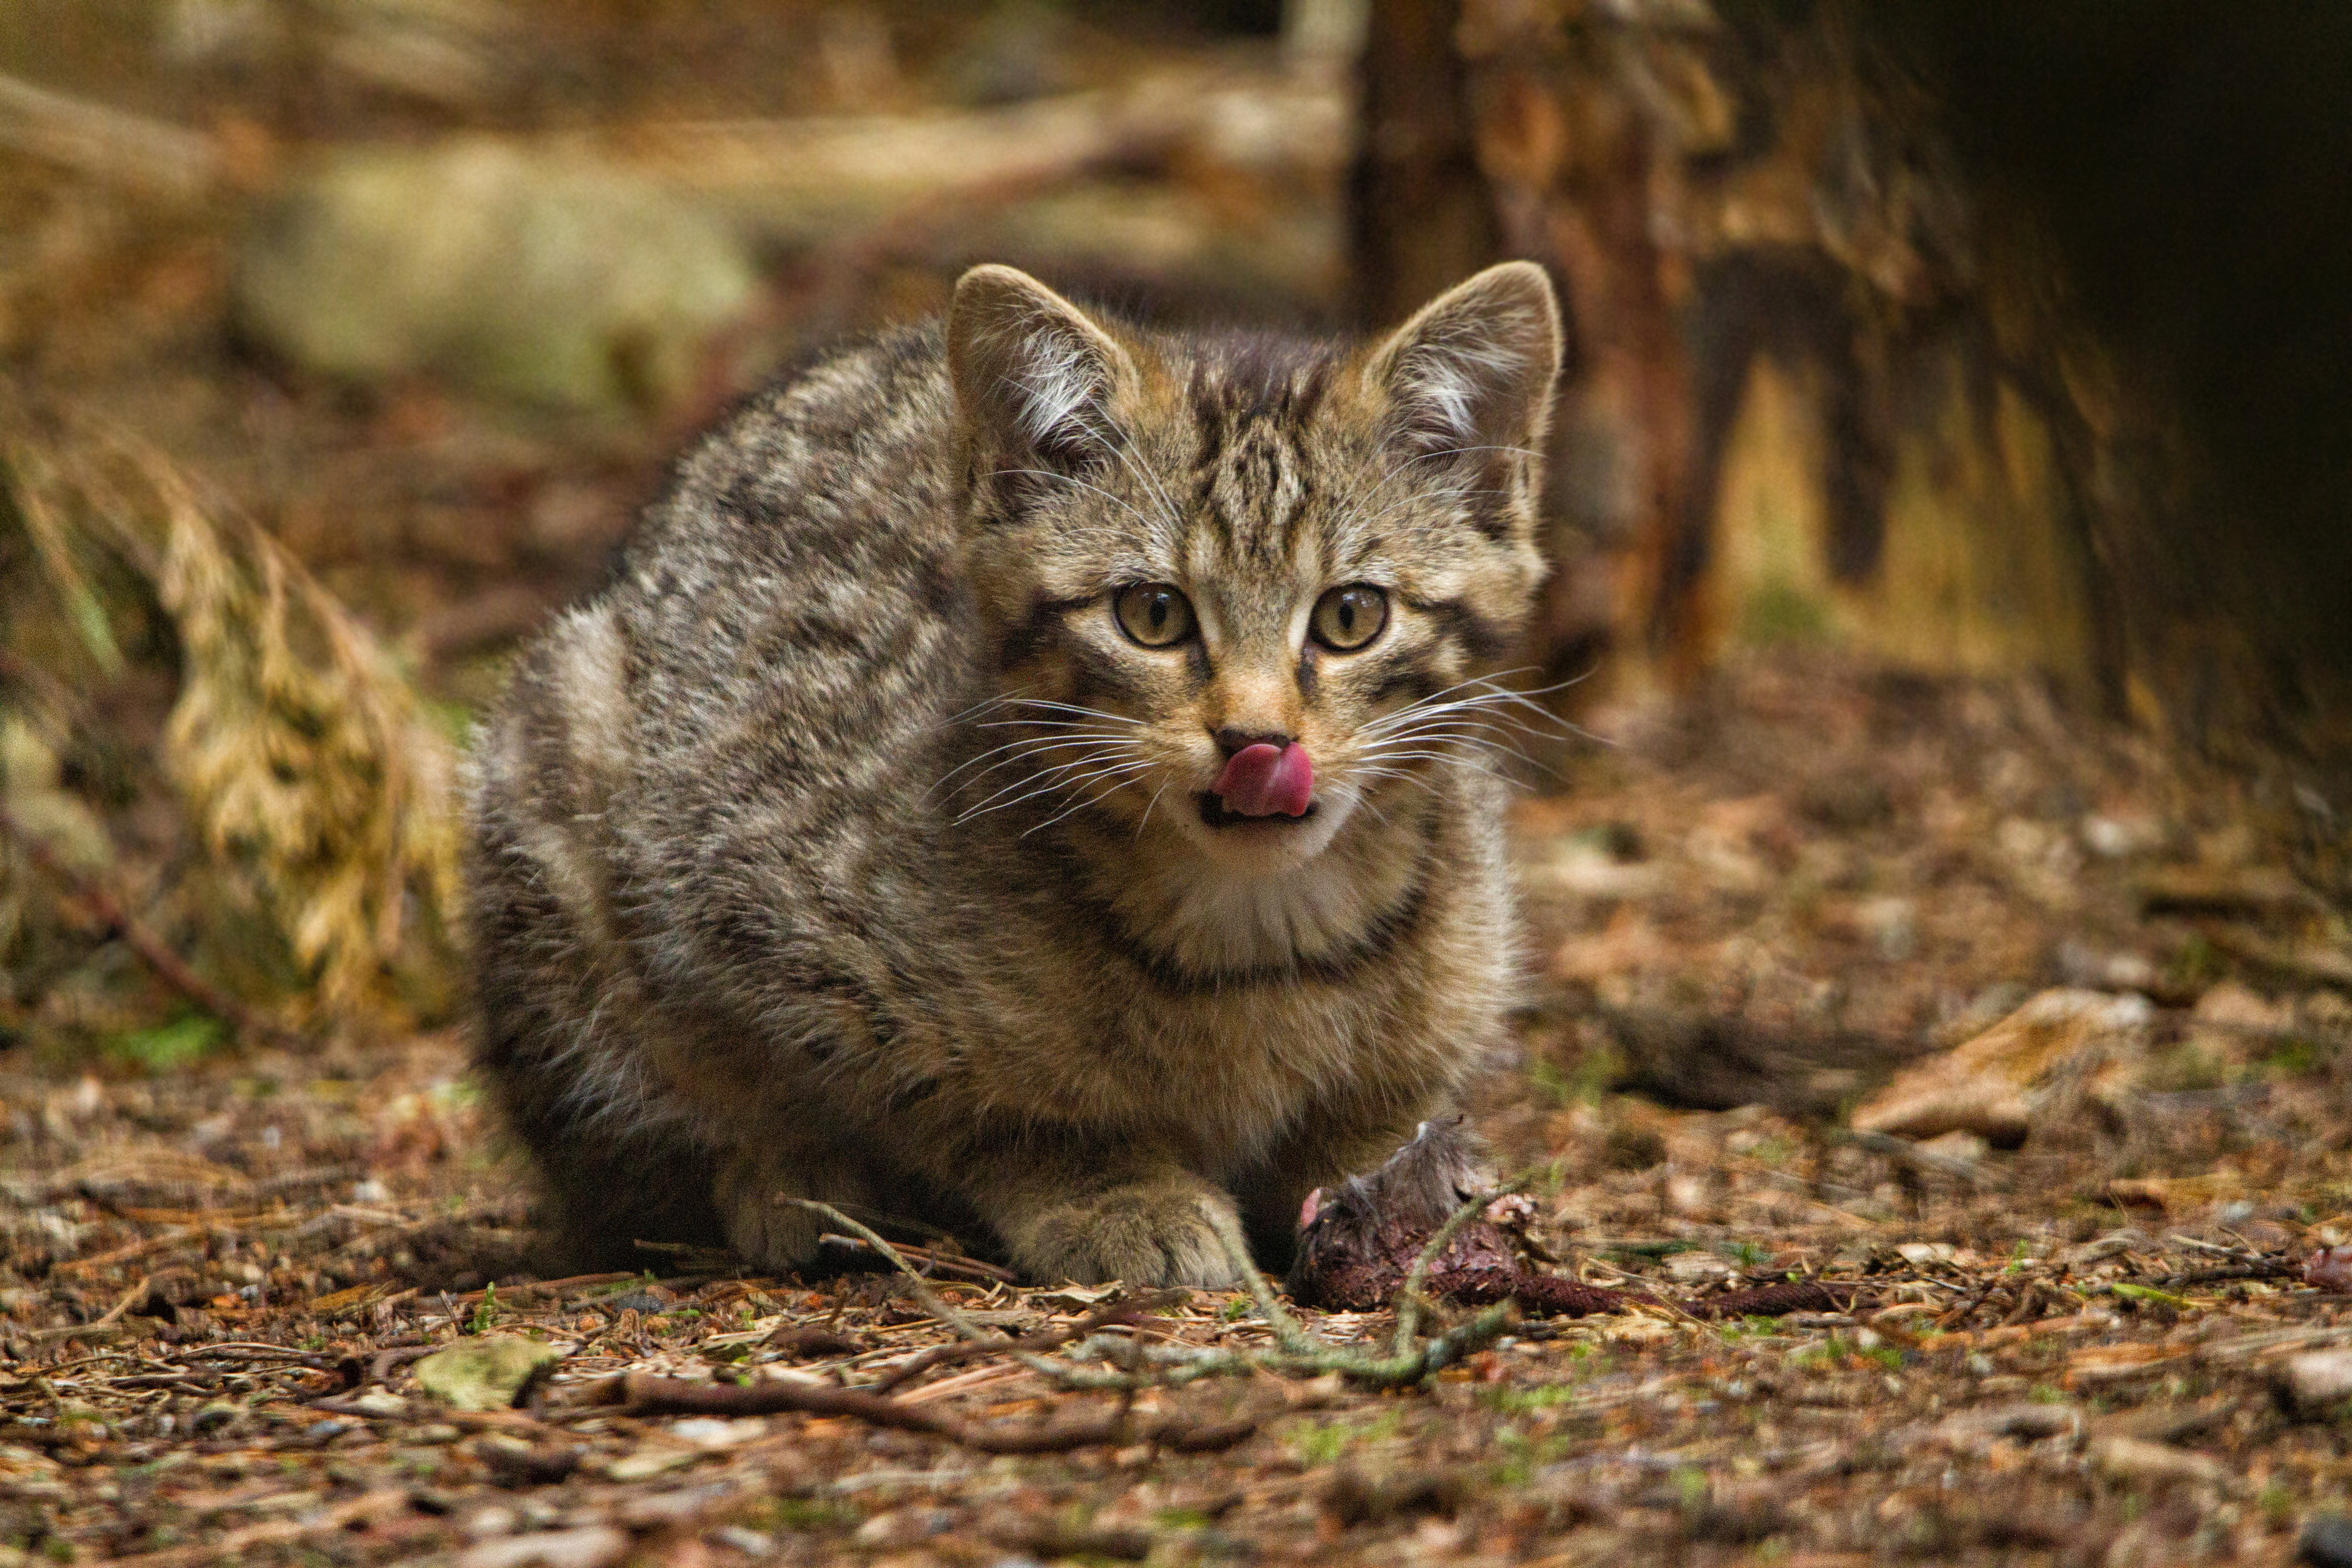 What Wild Animals Eat Cats